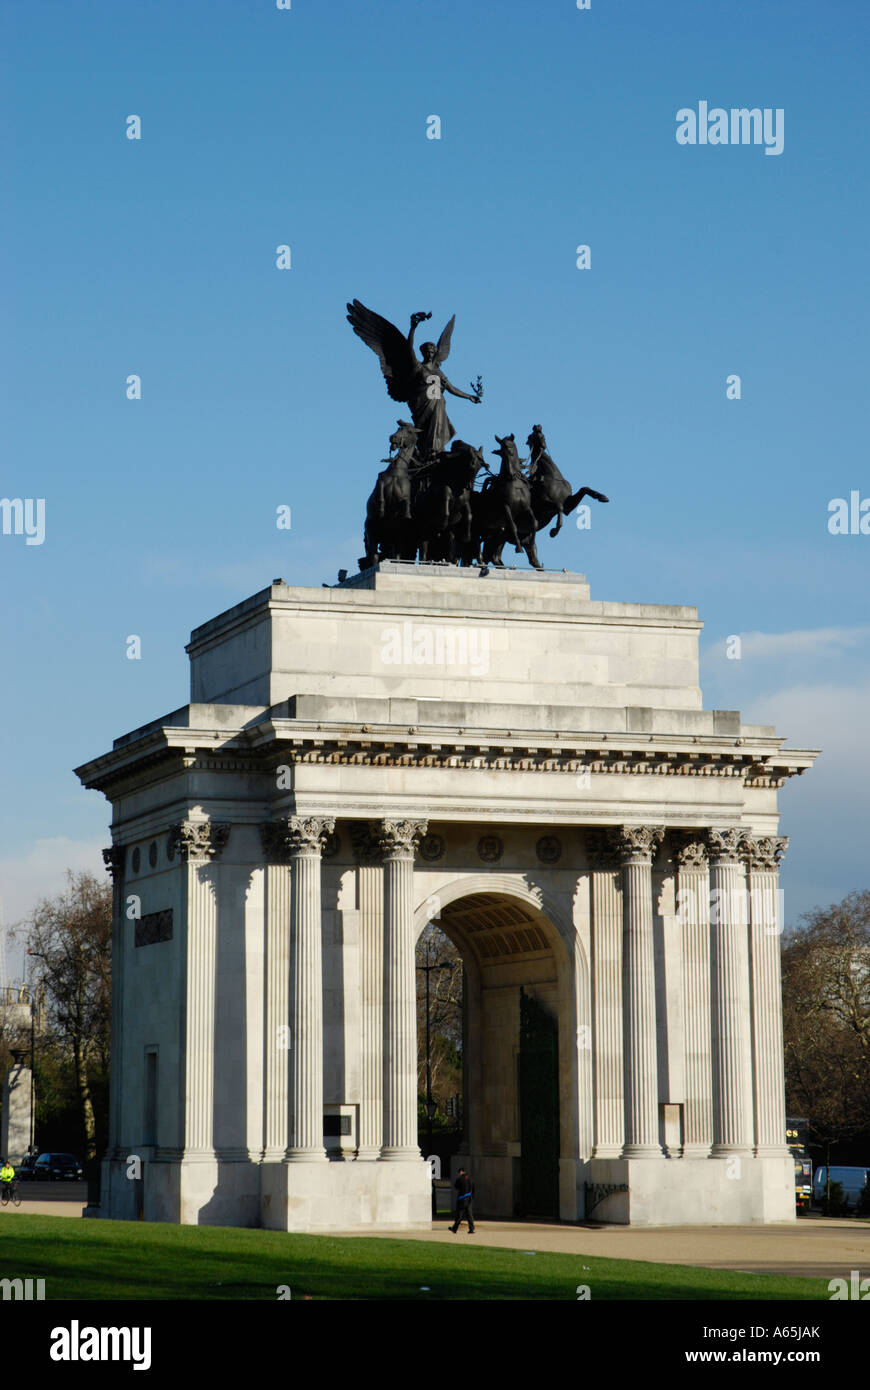 Front view of Wellington Arch against blue sky at Hyde Park Corner London England - Stock Image